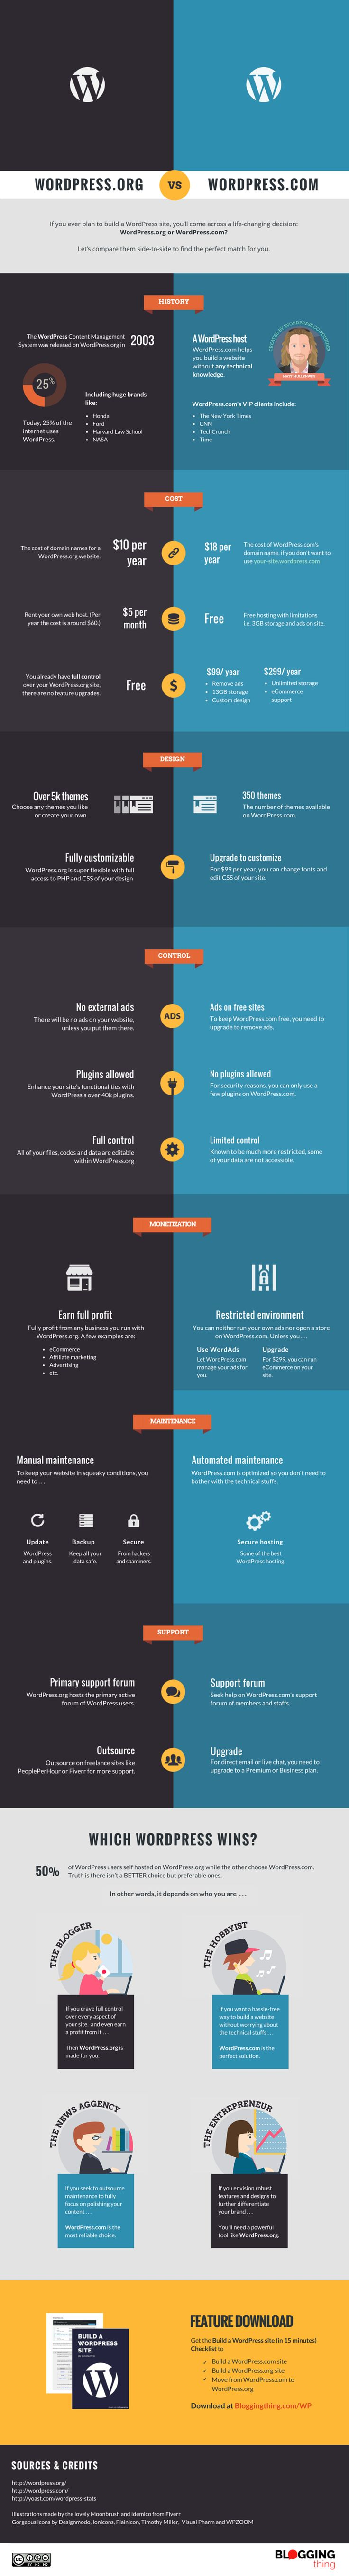 WordPress-dot-org-vs-WordPress-dot-com-Infographic-05